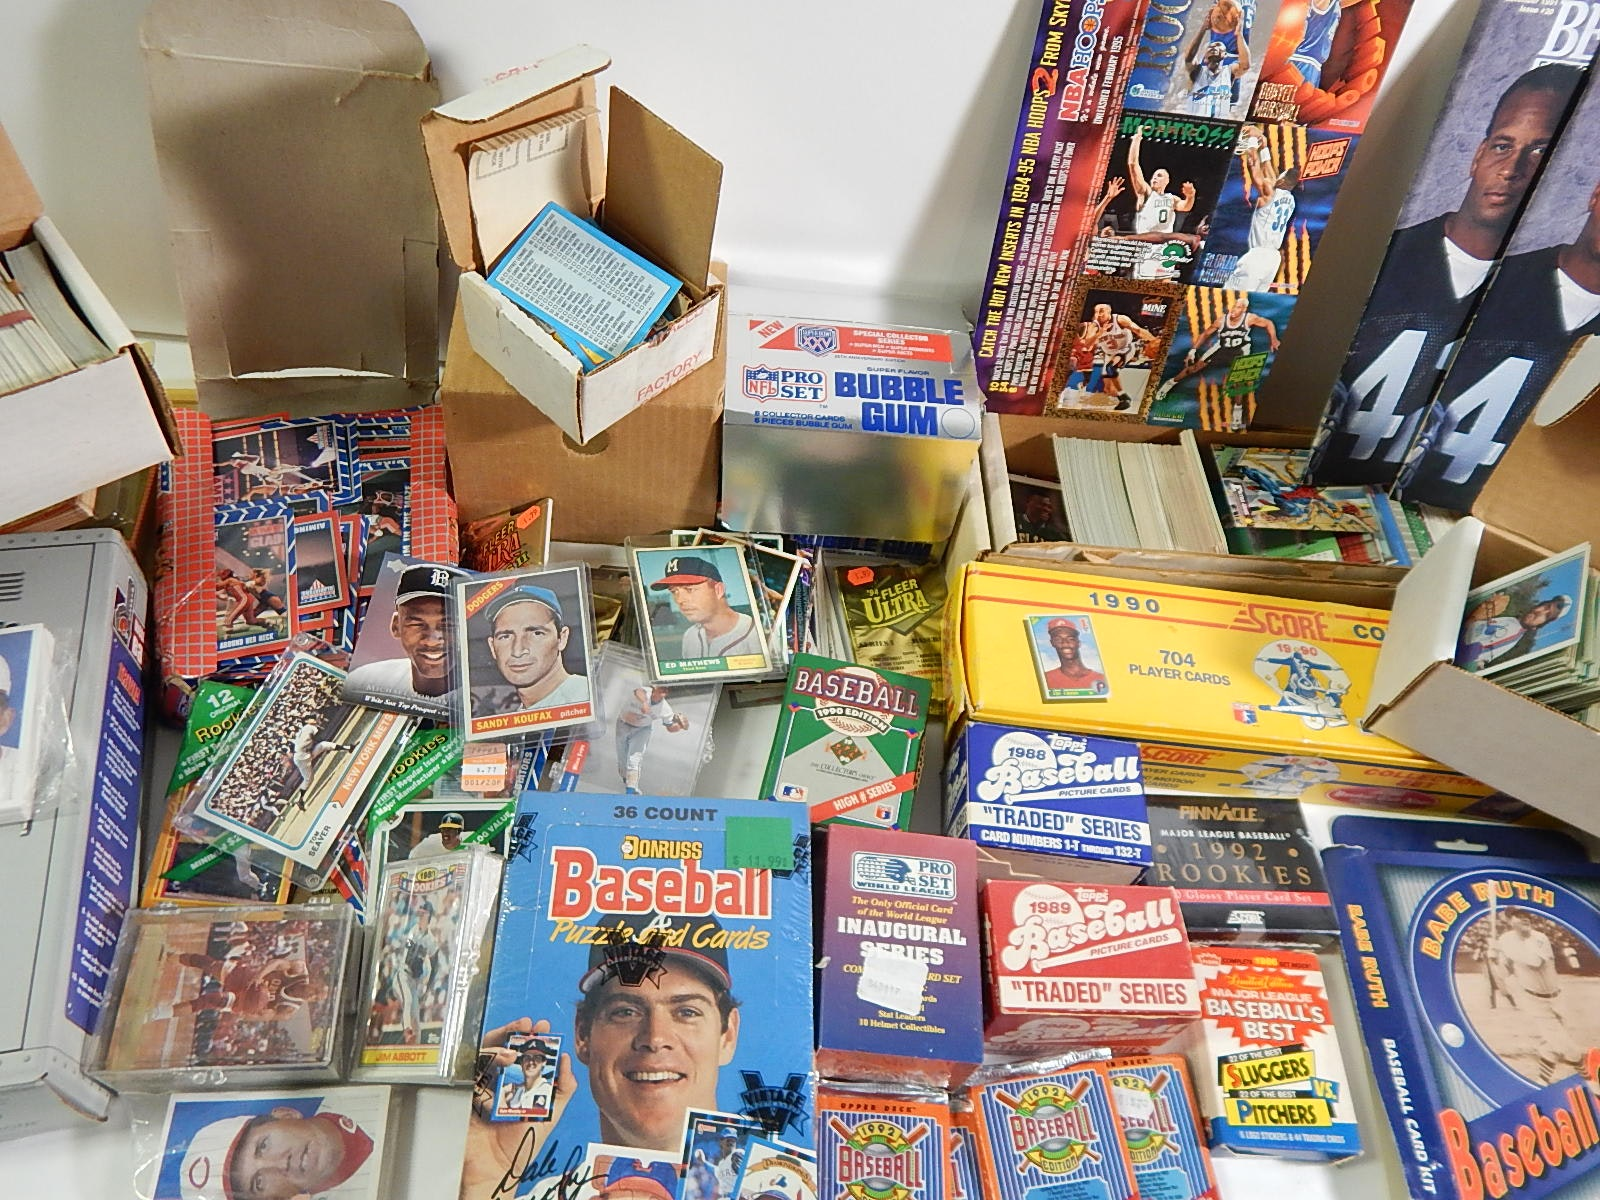 Large Sports Card Collection with Around 3000 Cards with Sets, Rookies, More